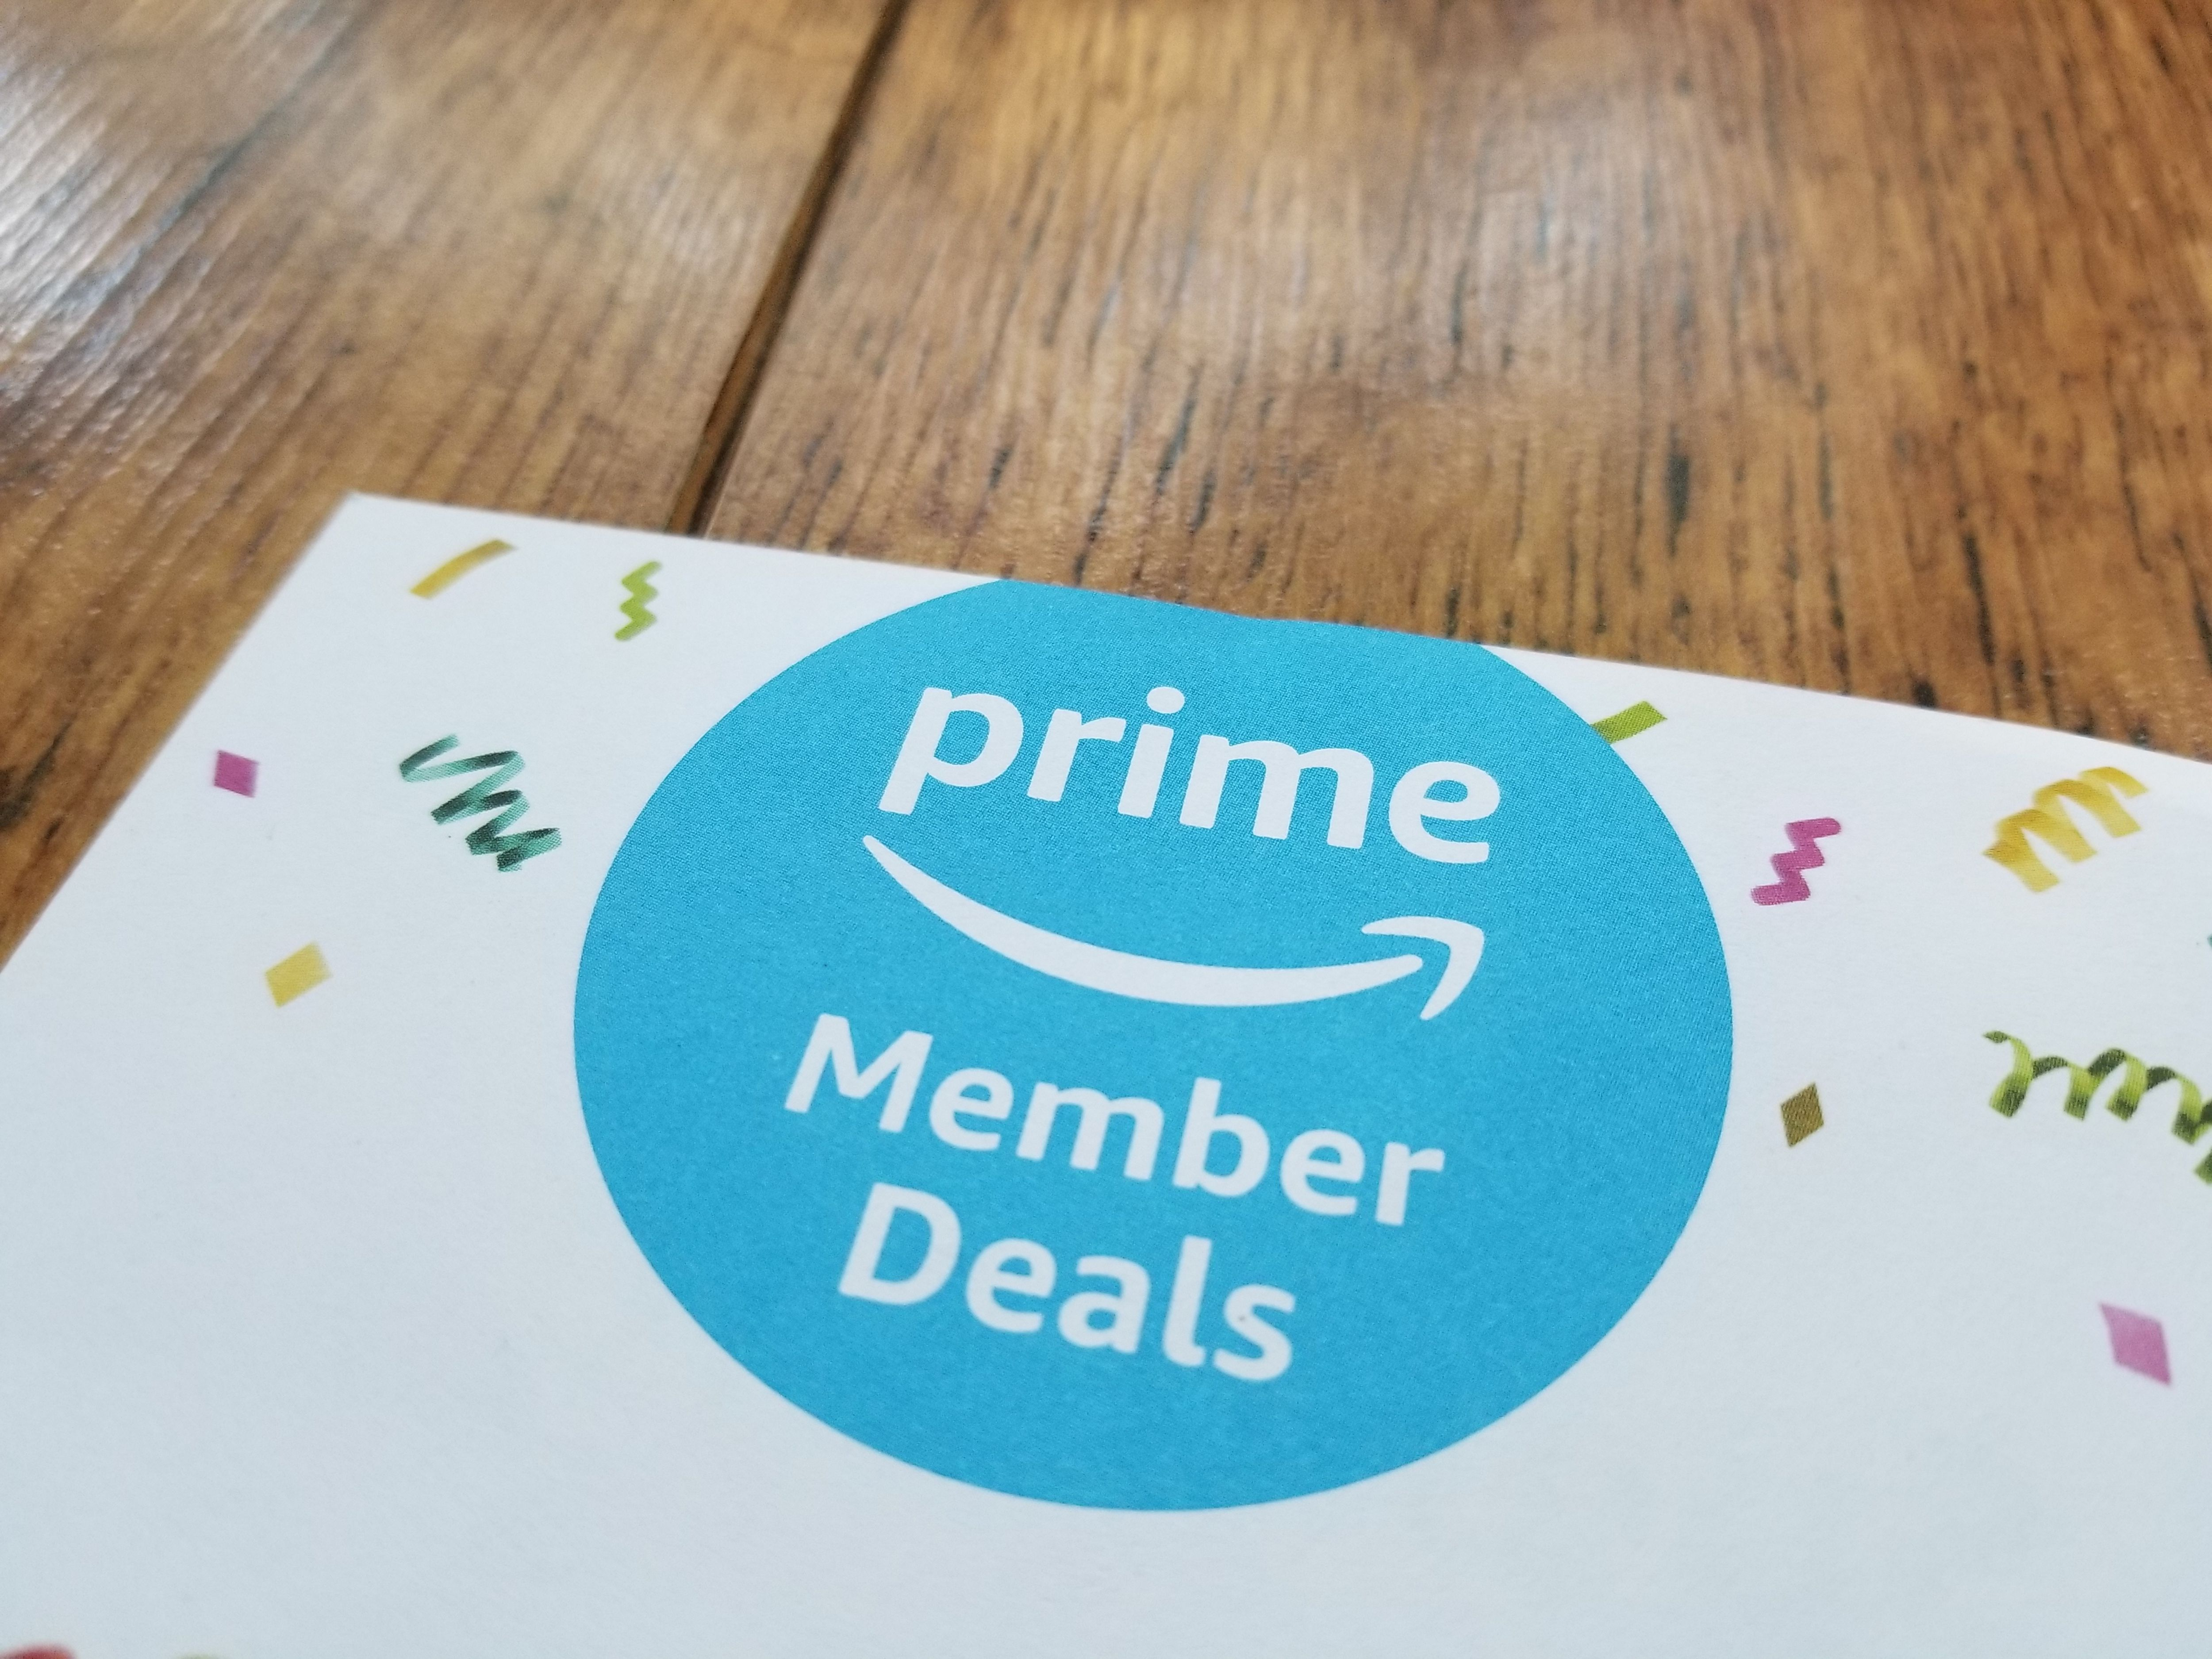 Best Amazon Prime Day Deals 2020 When Is Amazon Prime Day 2020